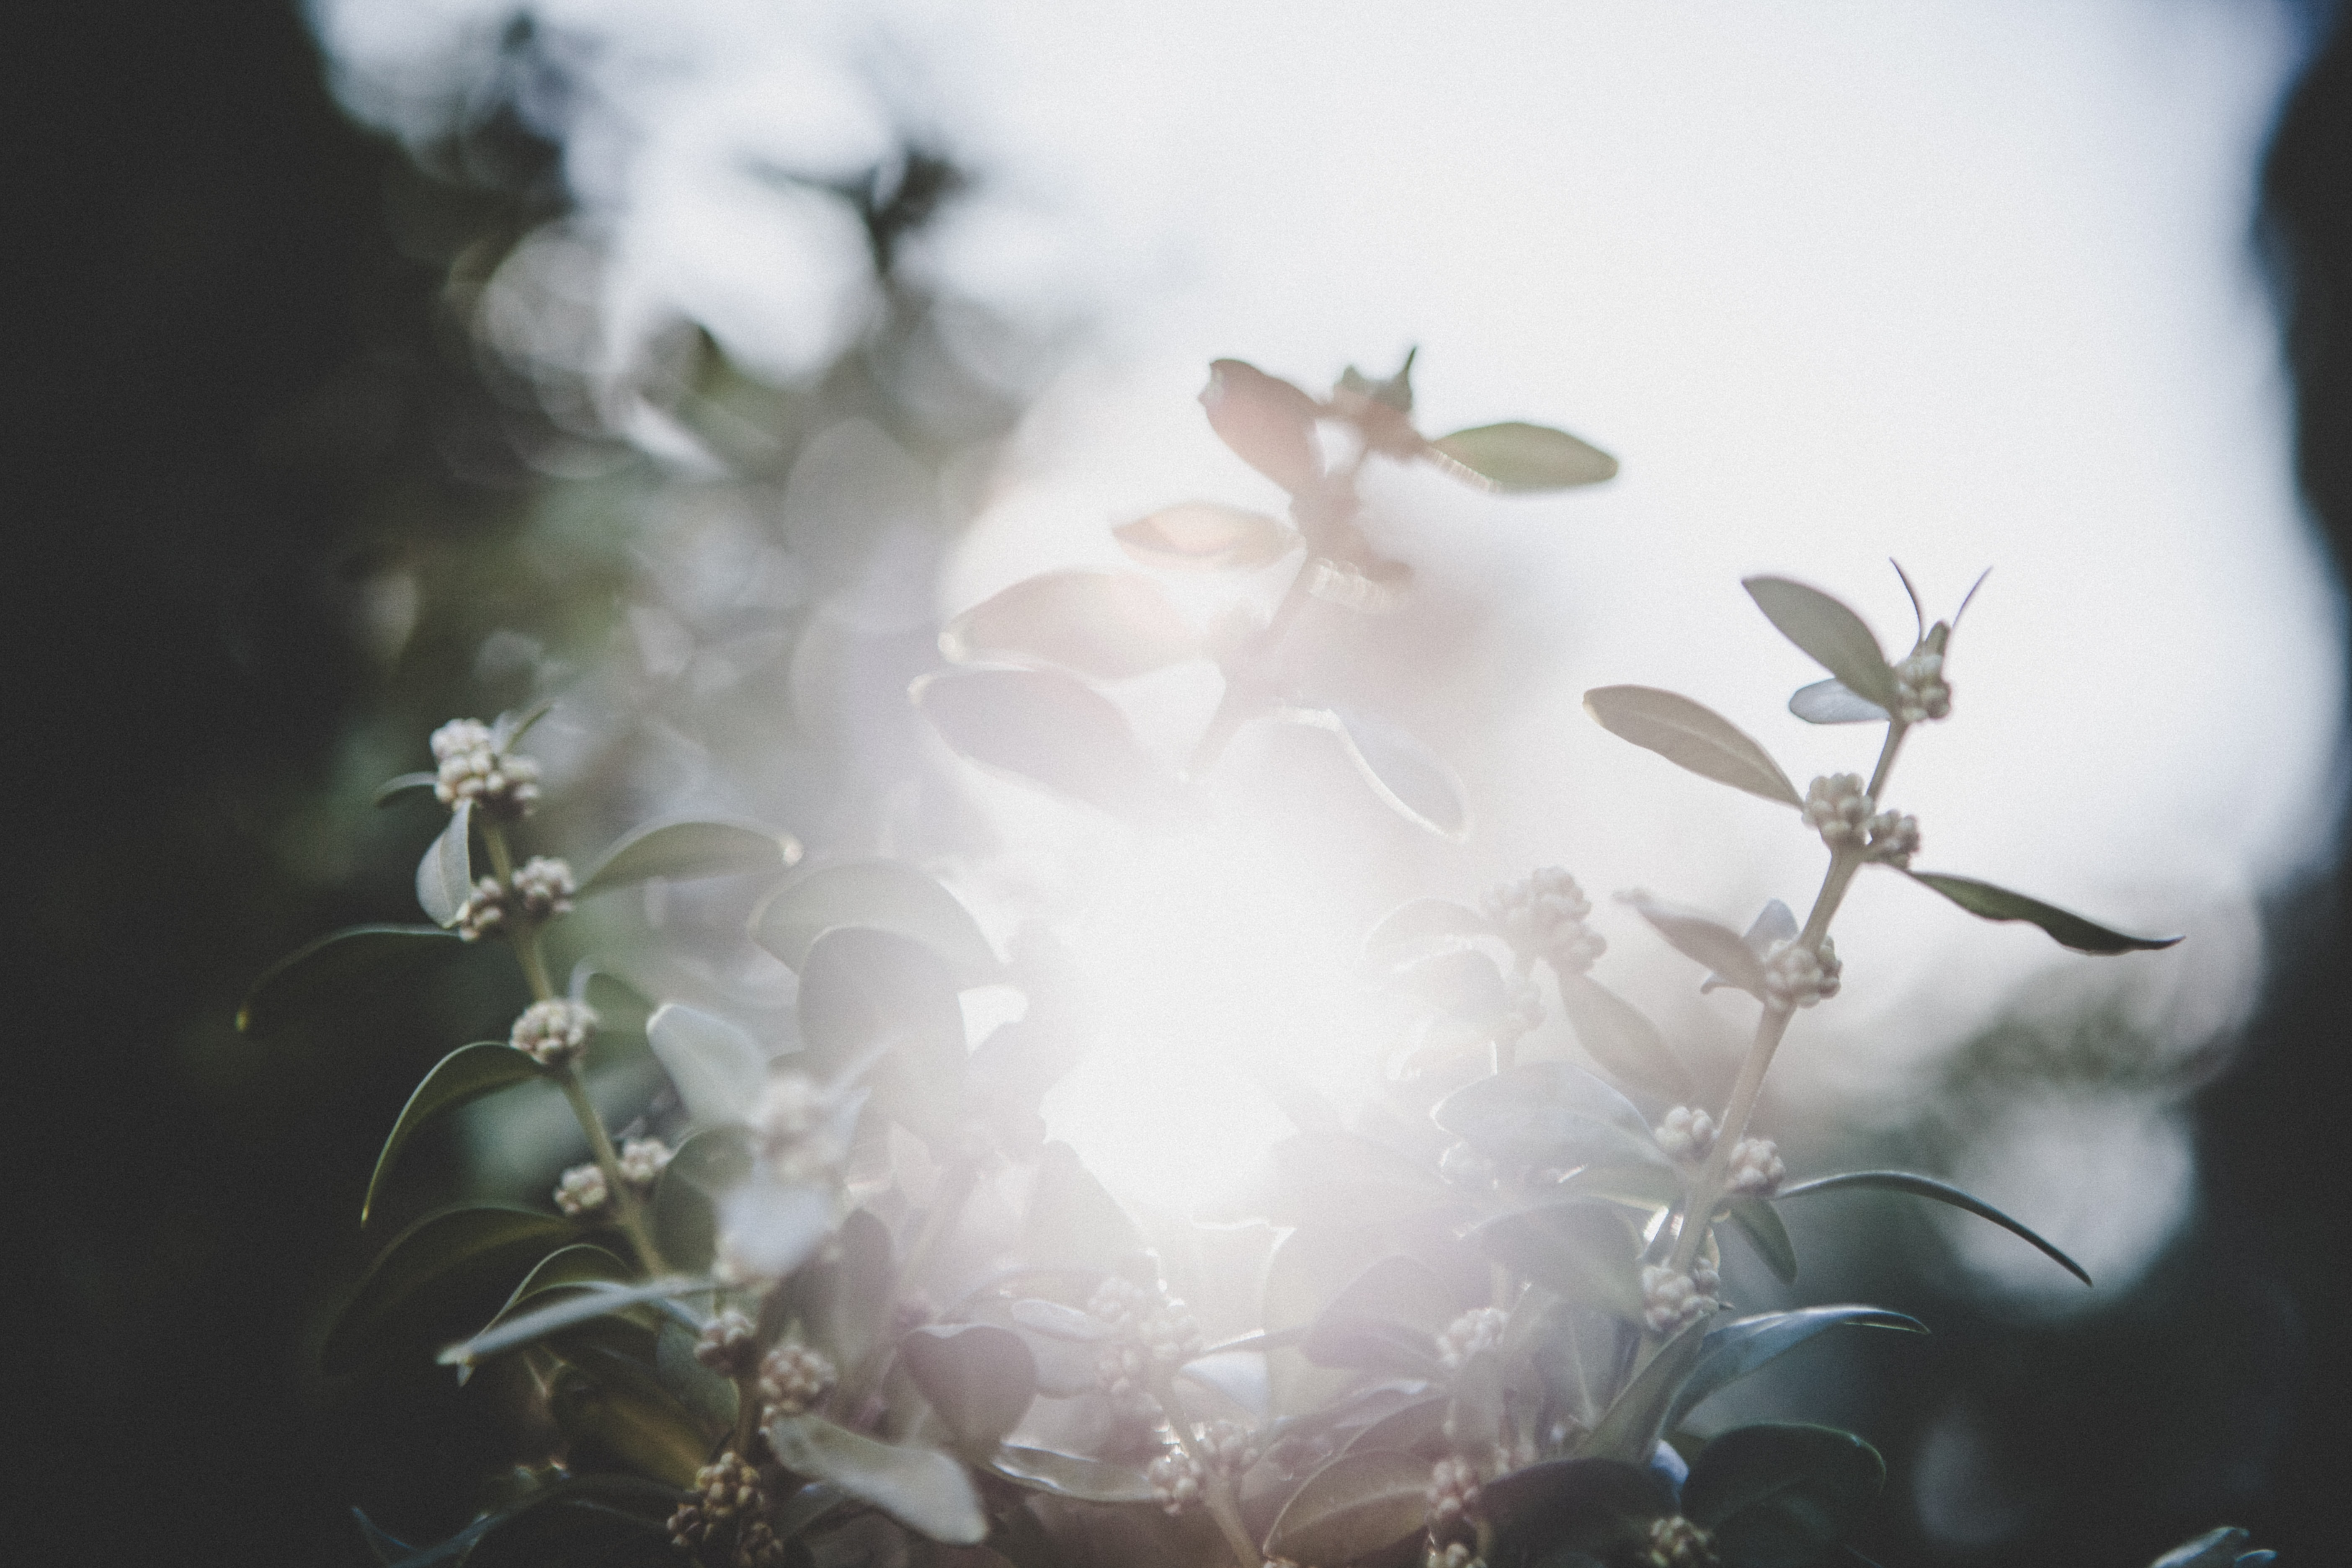 white petaled flowers shined by sunlight